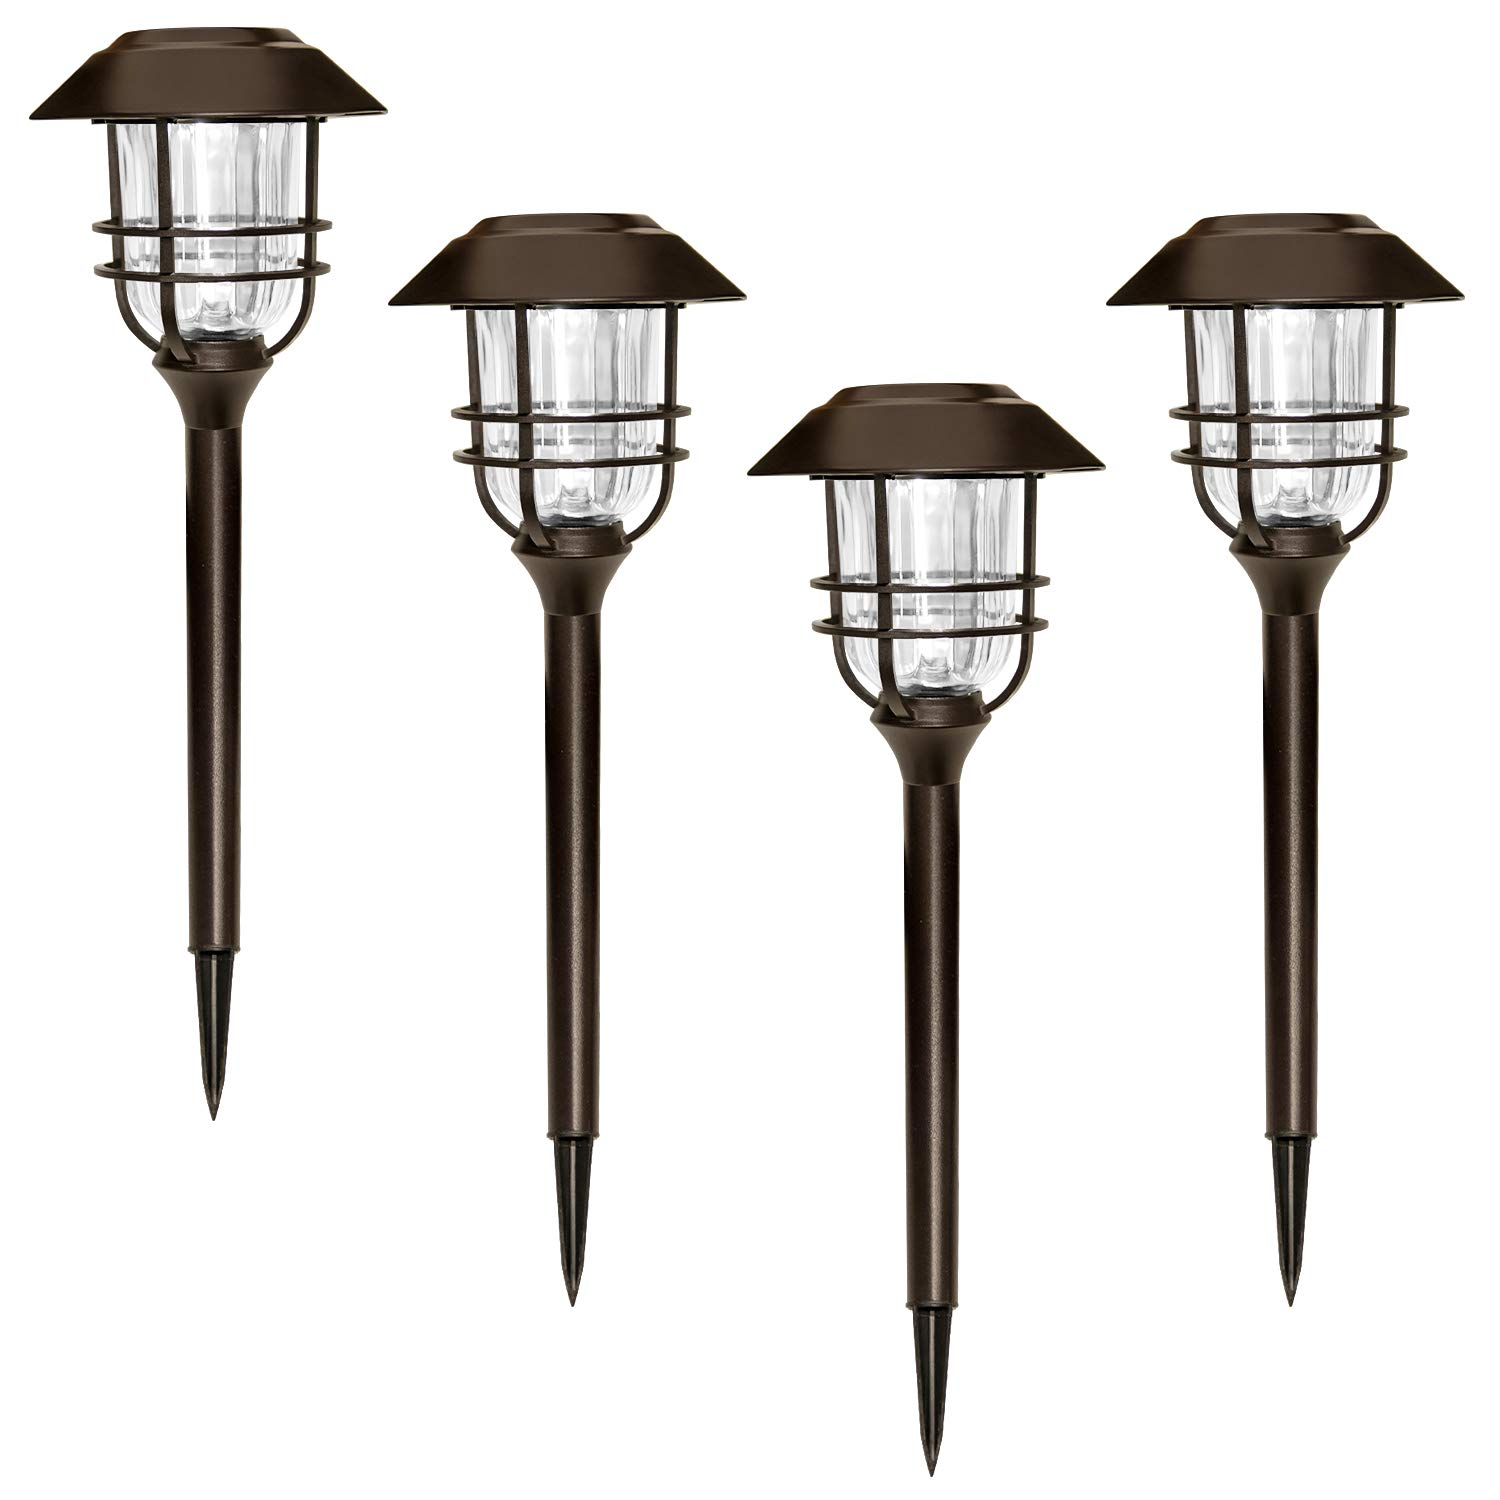 SUNWIND Outdoor LED Solar Lighting - 4 Pack Bronze Outdoor Path Lighting LED Solar Powered Garden Landscape Lamp Die Casting Aluminum Patio Pathway Clear Glass Heavy-Duty for All Weather (Bronze) by SUNWIND